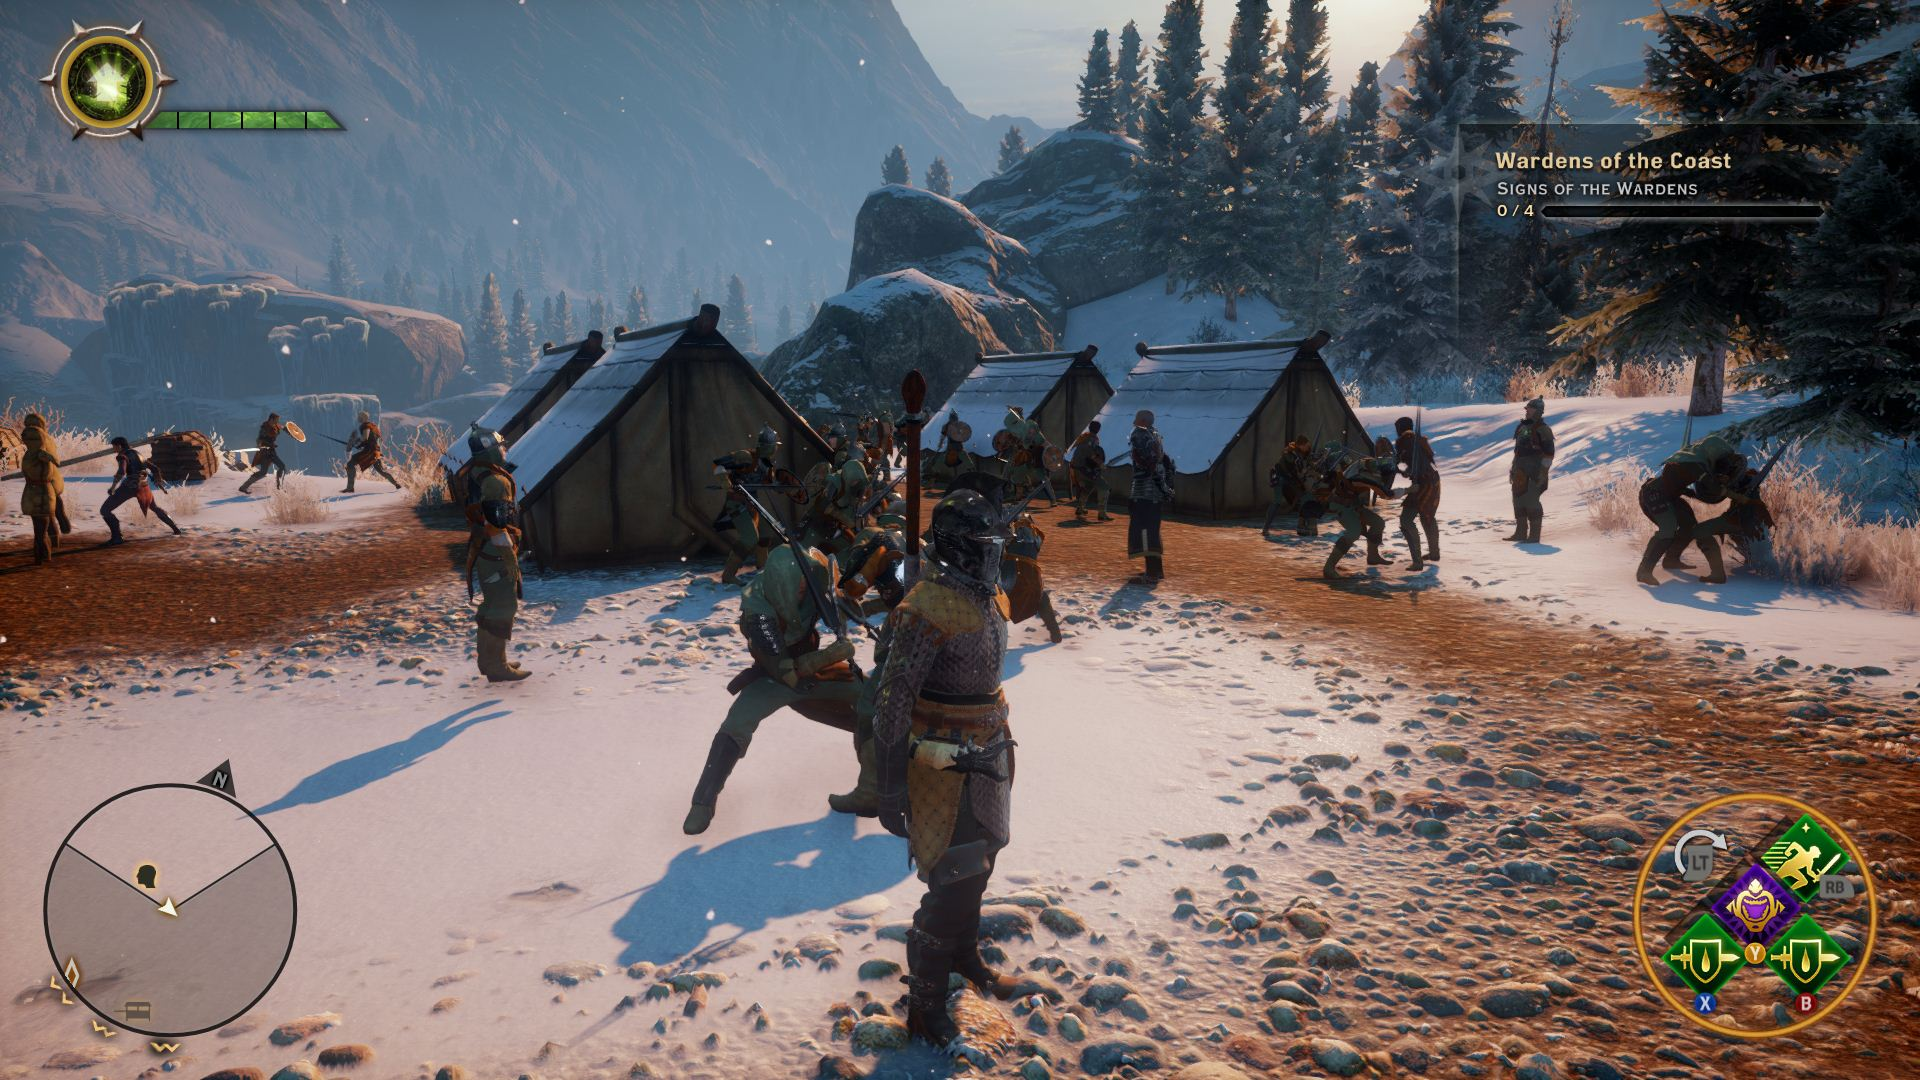 Skyrim Fall Wallpaper Hd Dragon Age Inquisition Review